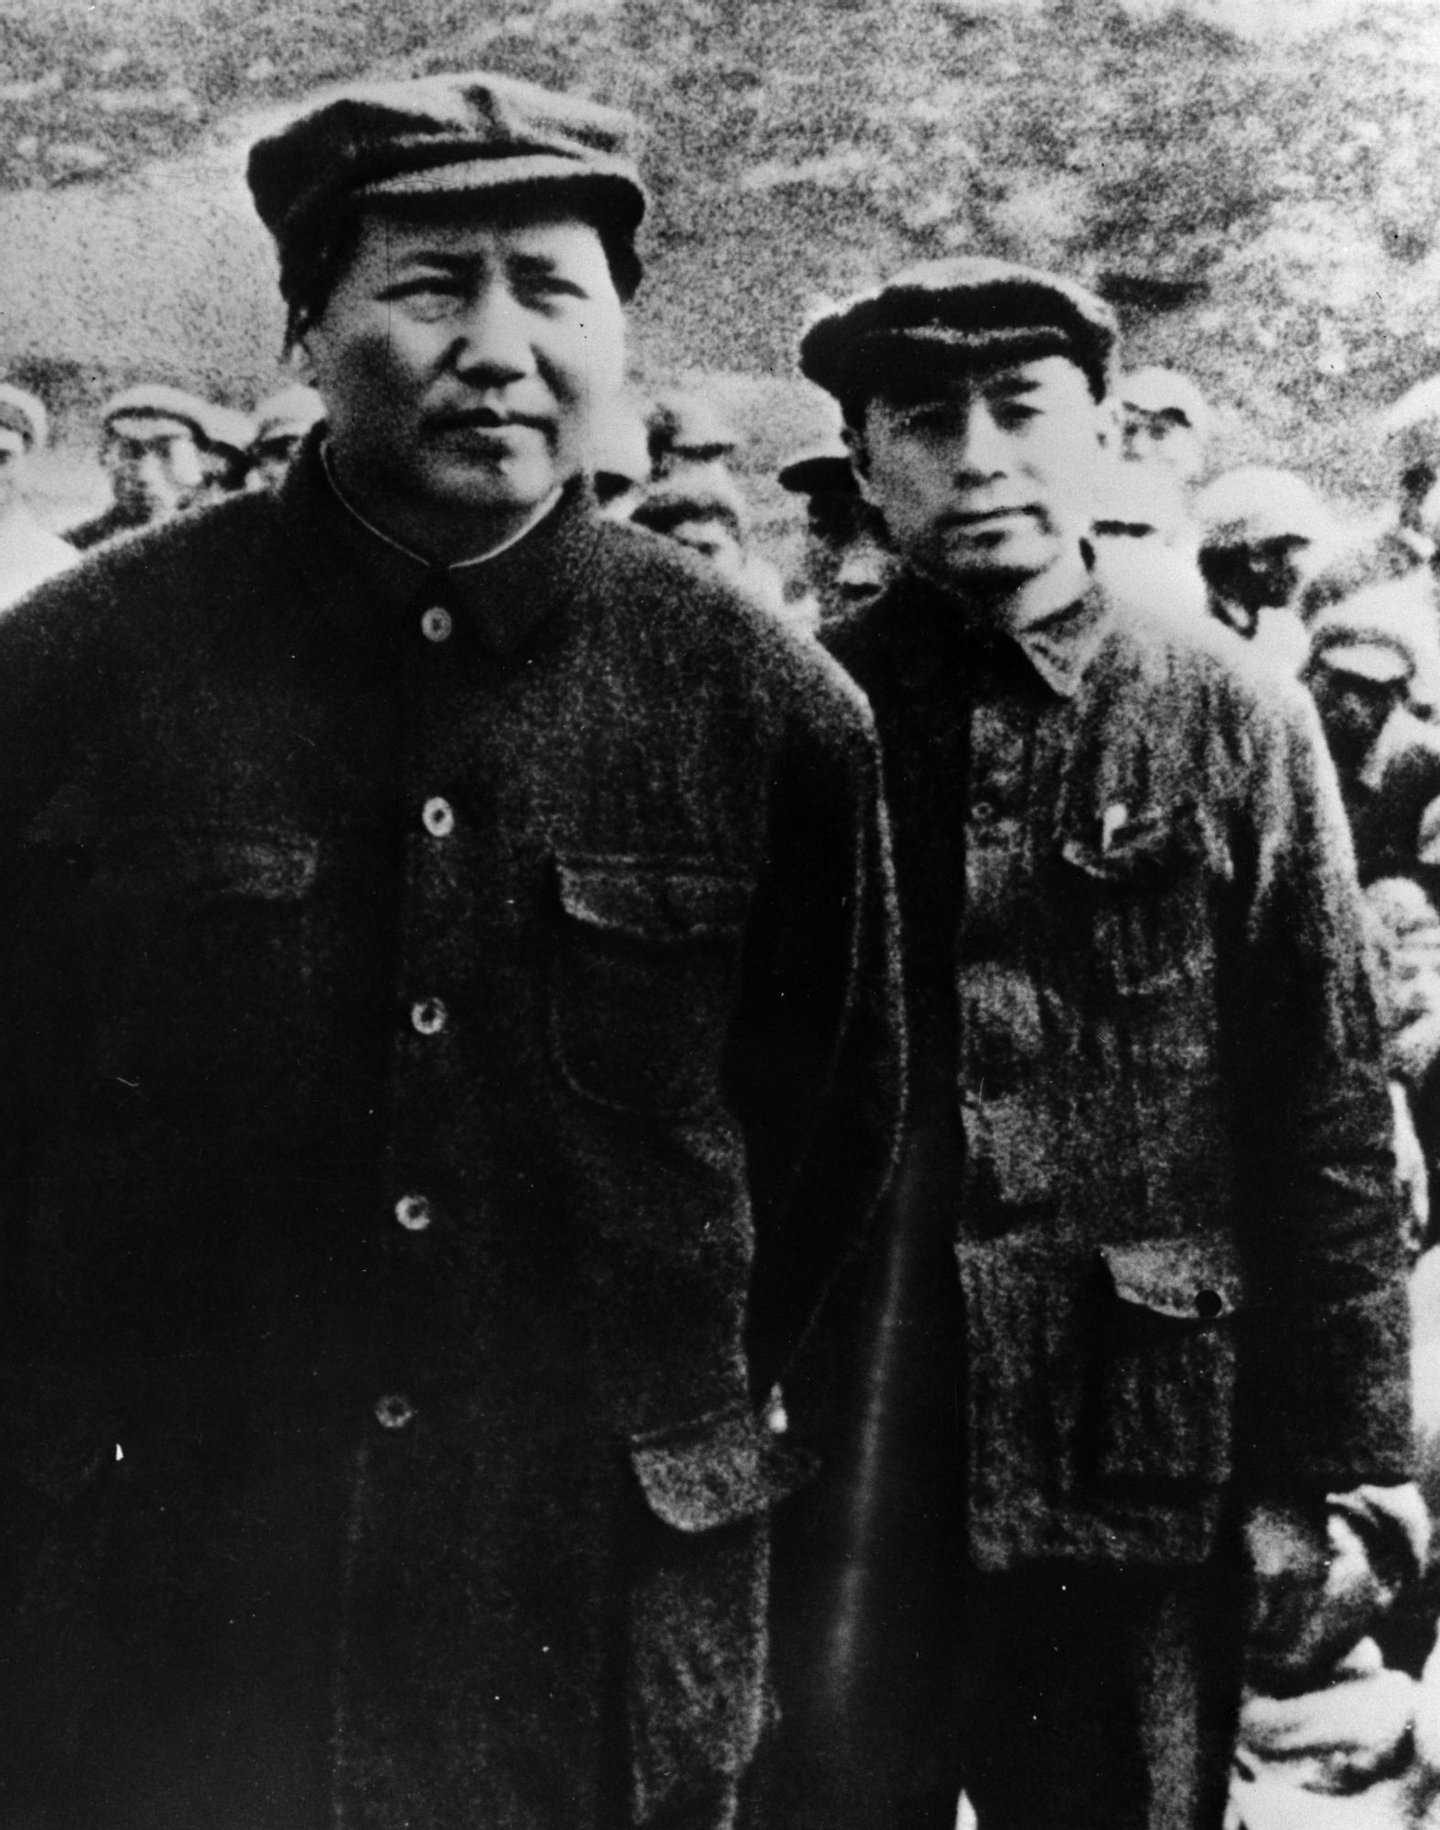 1935:  Mao Zedong (1893 - 1976) with Zhou Enlai (1898 - 1976) leaders of the Chinese Communist party during the 'Long March' when approximately 100,000 communists  under Mao walked over 5,00 miles to escape Nationalist Government troops.  (Photo by Keystone/Getty Images)